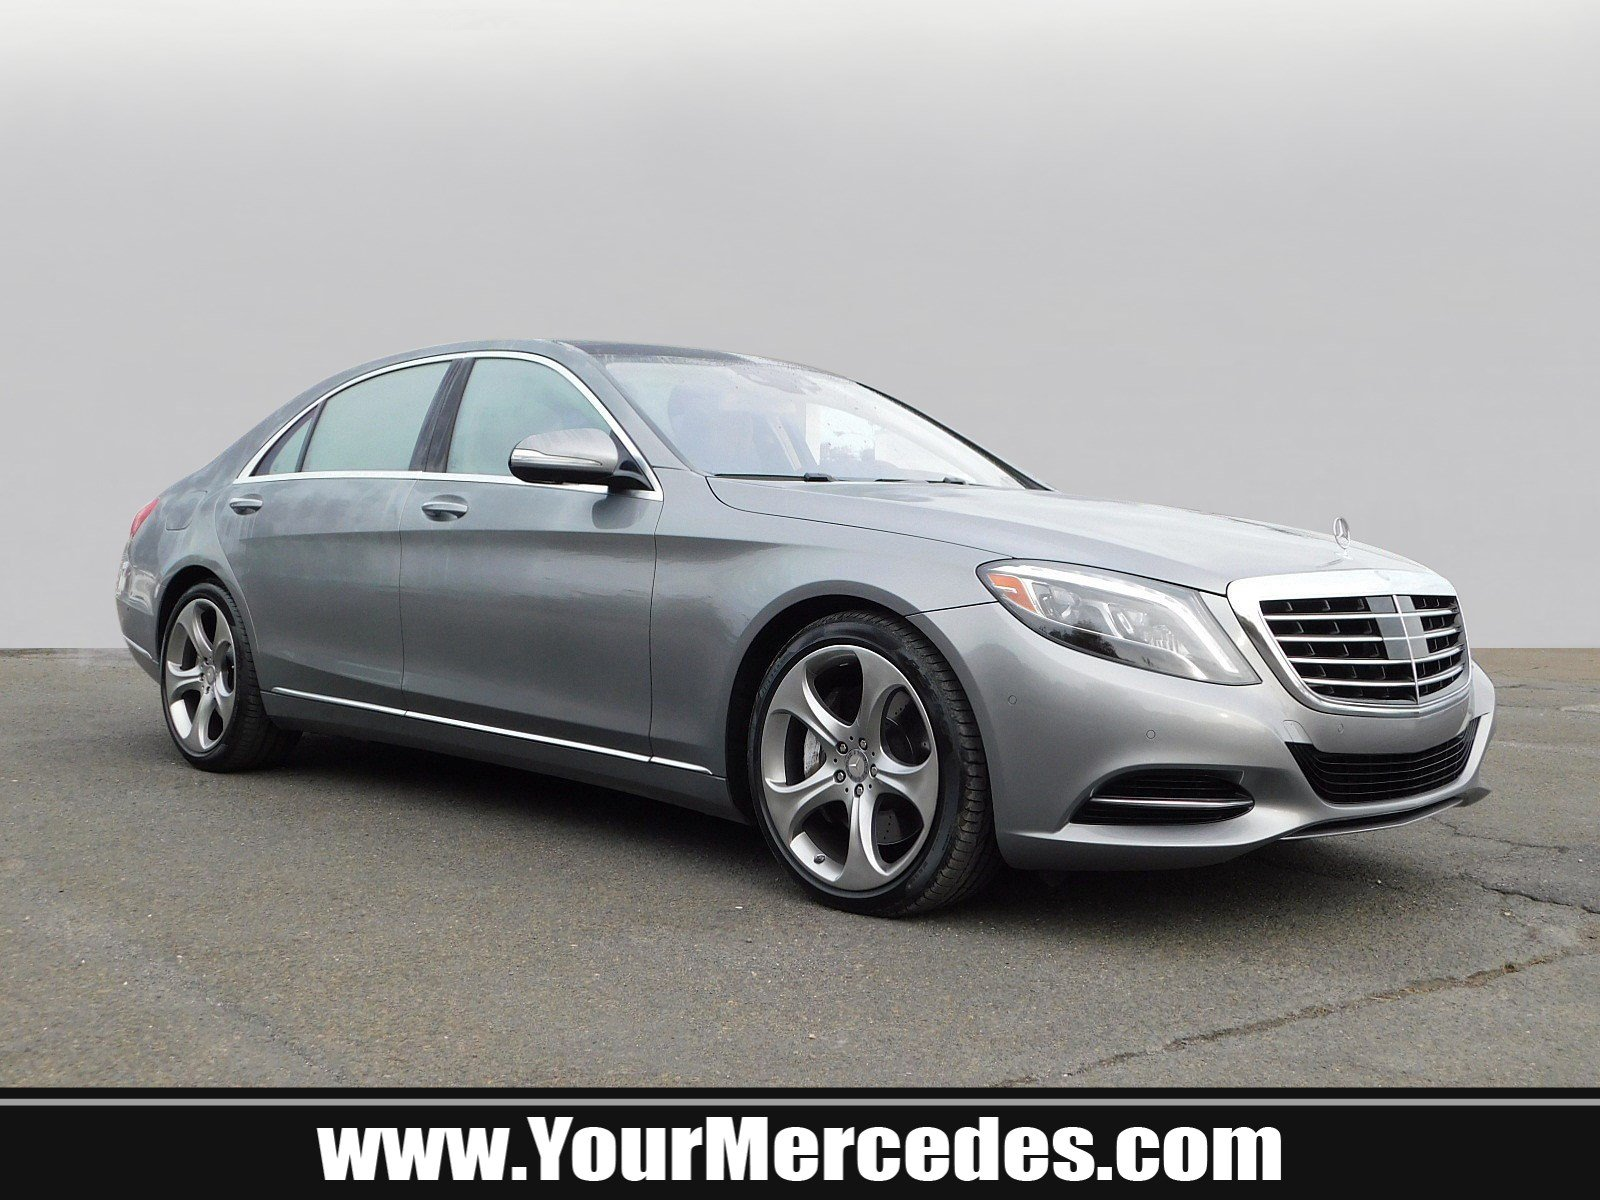 Pre Owned 2015 Mercedes Benz S Class S 550 4D Sedan in West Chester